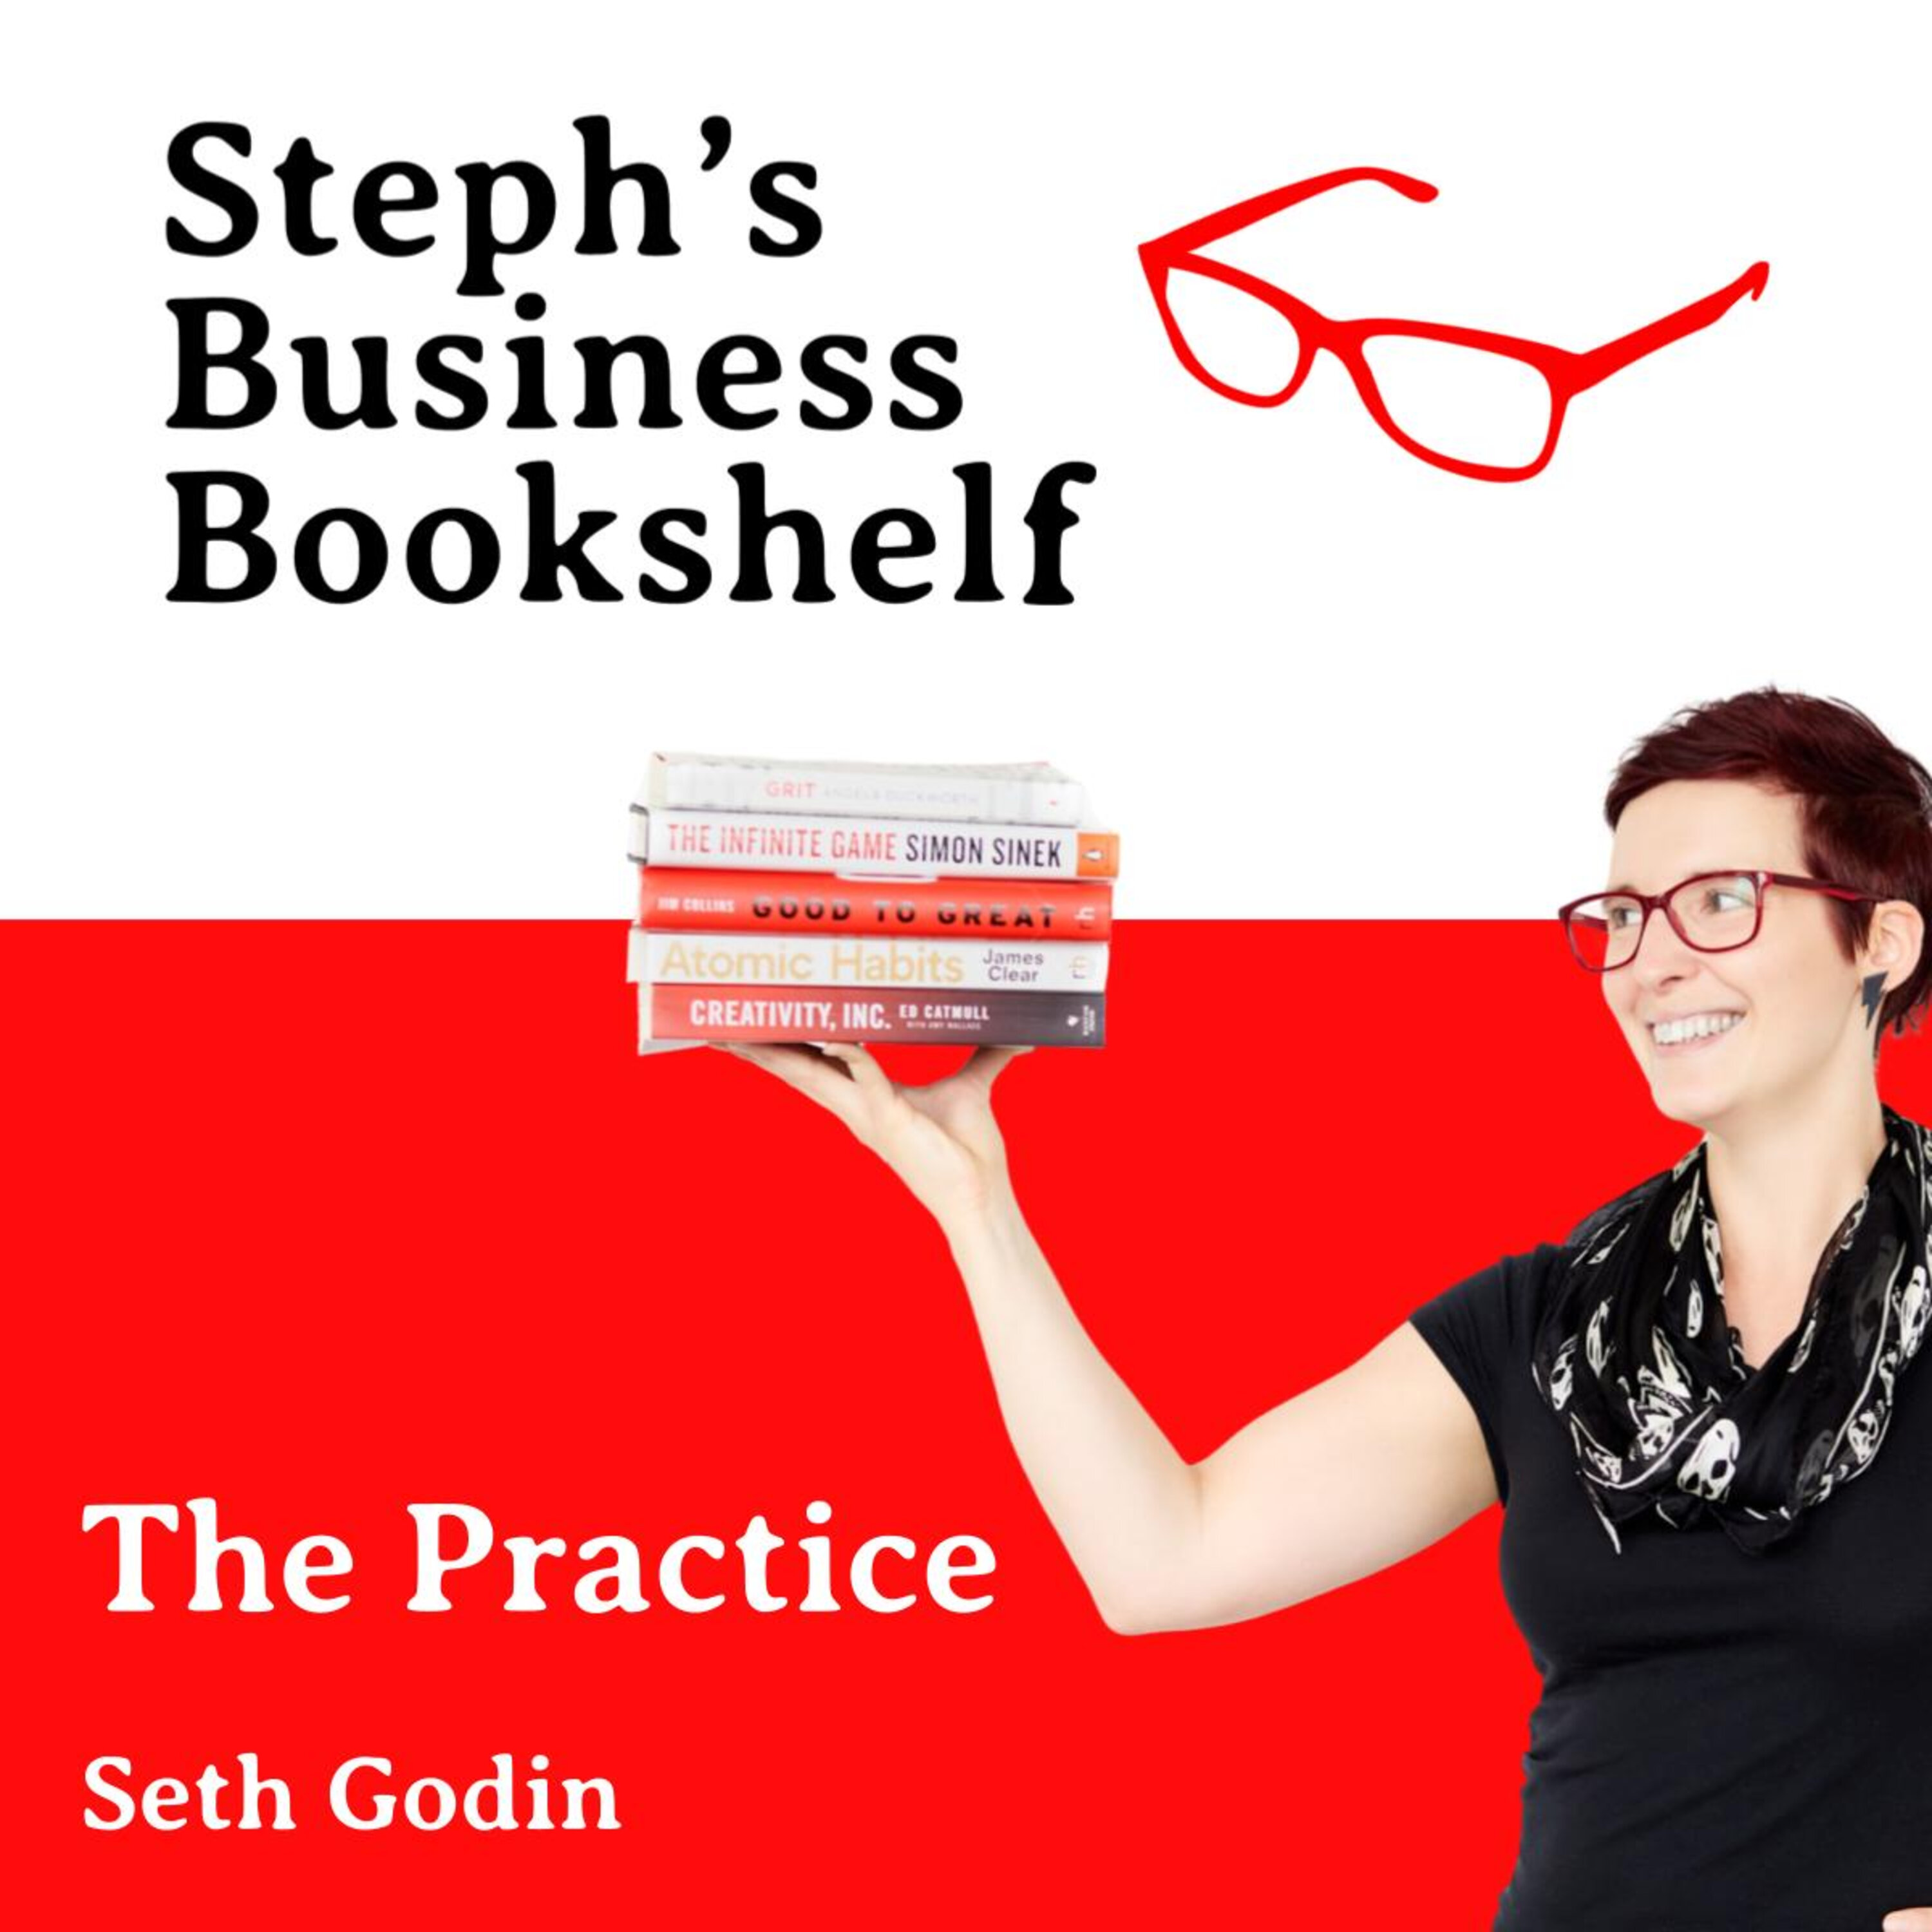 The Practice by Seth Godin: Why everything you thought you knew about creativity is wrong